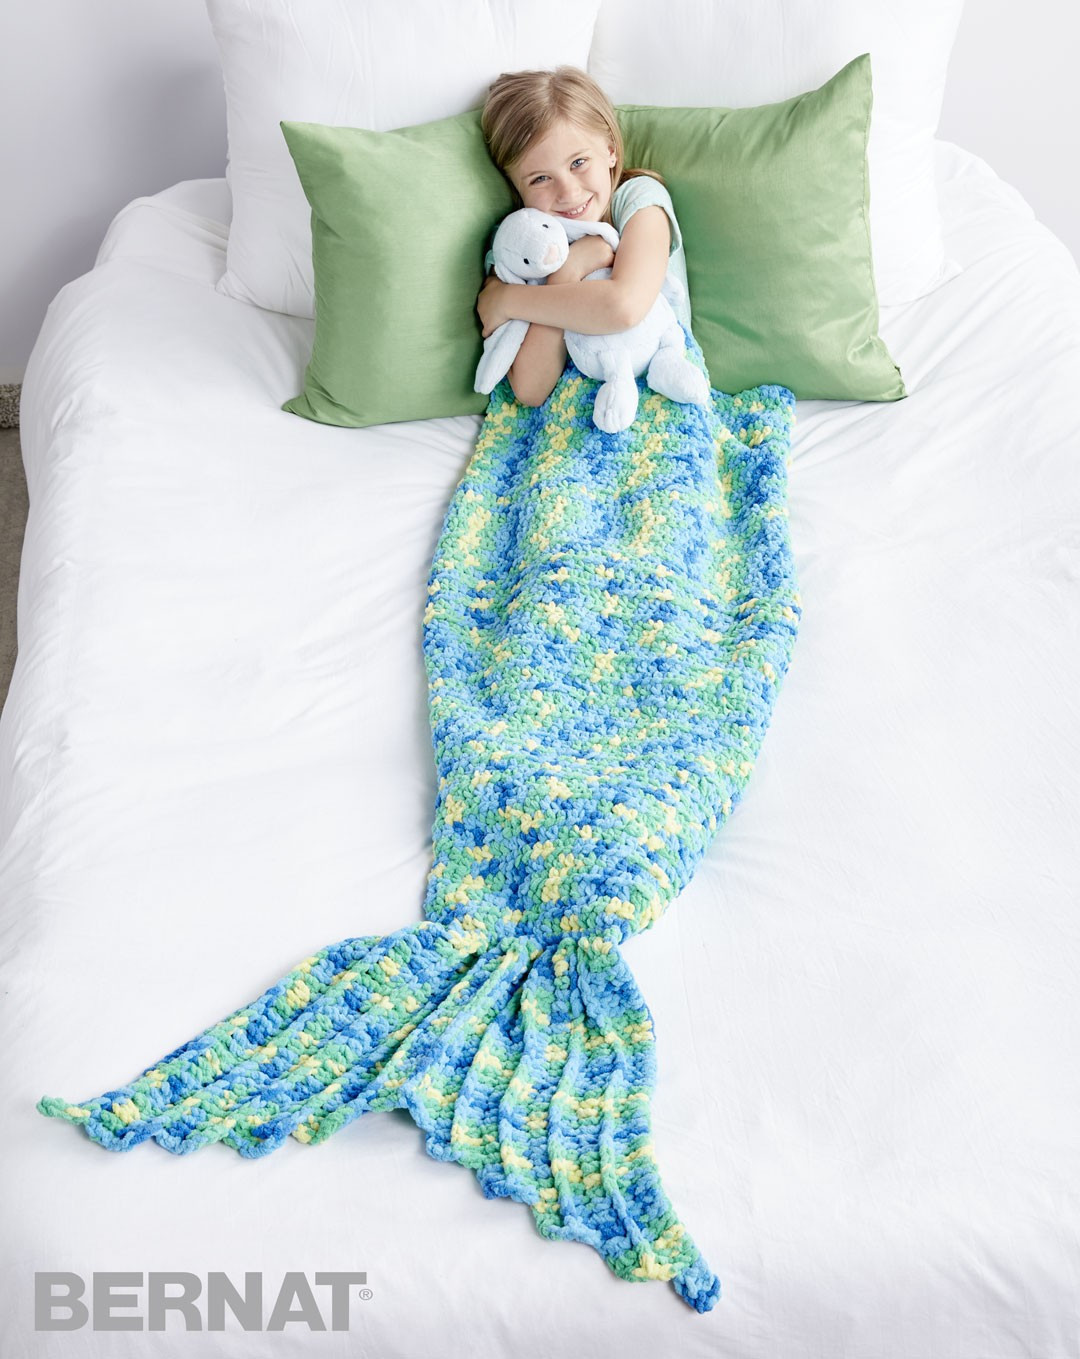 Bernat Crochet Patterns Beautiful Bernat My Mermaid Crochet Snuggle Sack Crochet Pattern Of Awesome 45 Photos Bernat Crochet Patterns